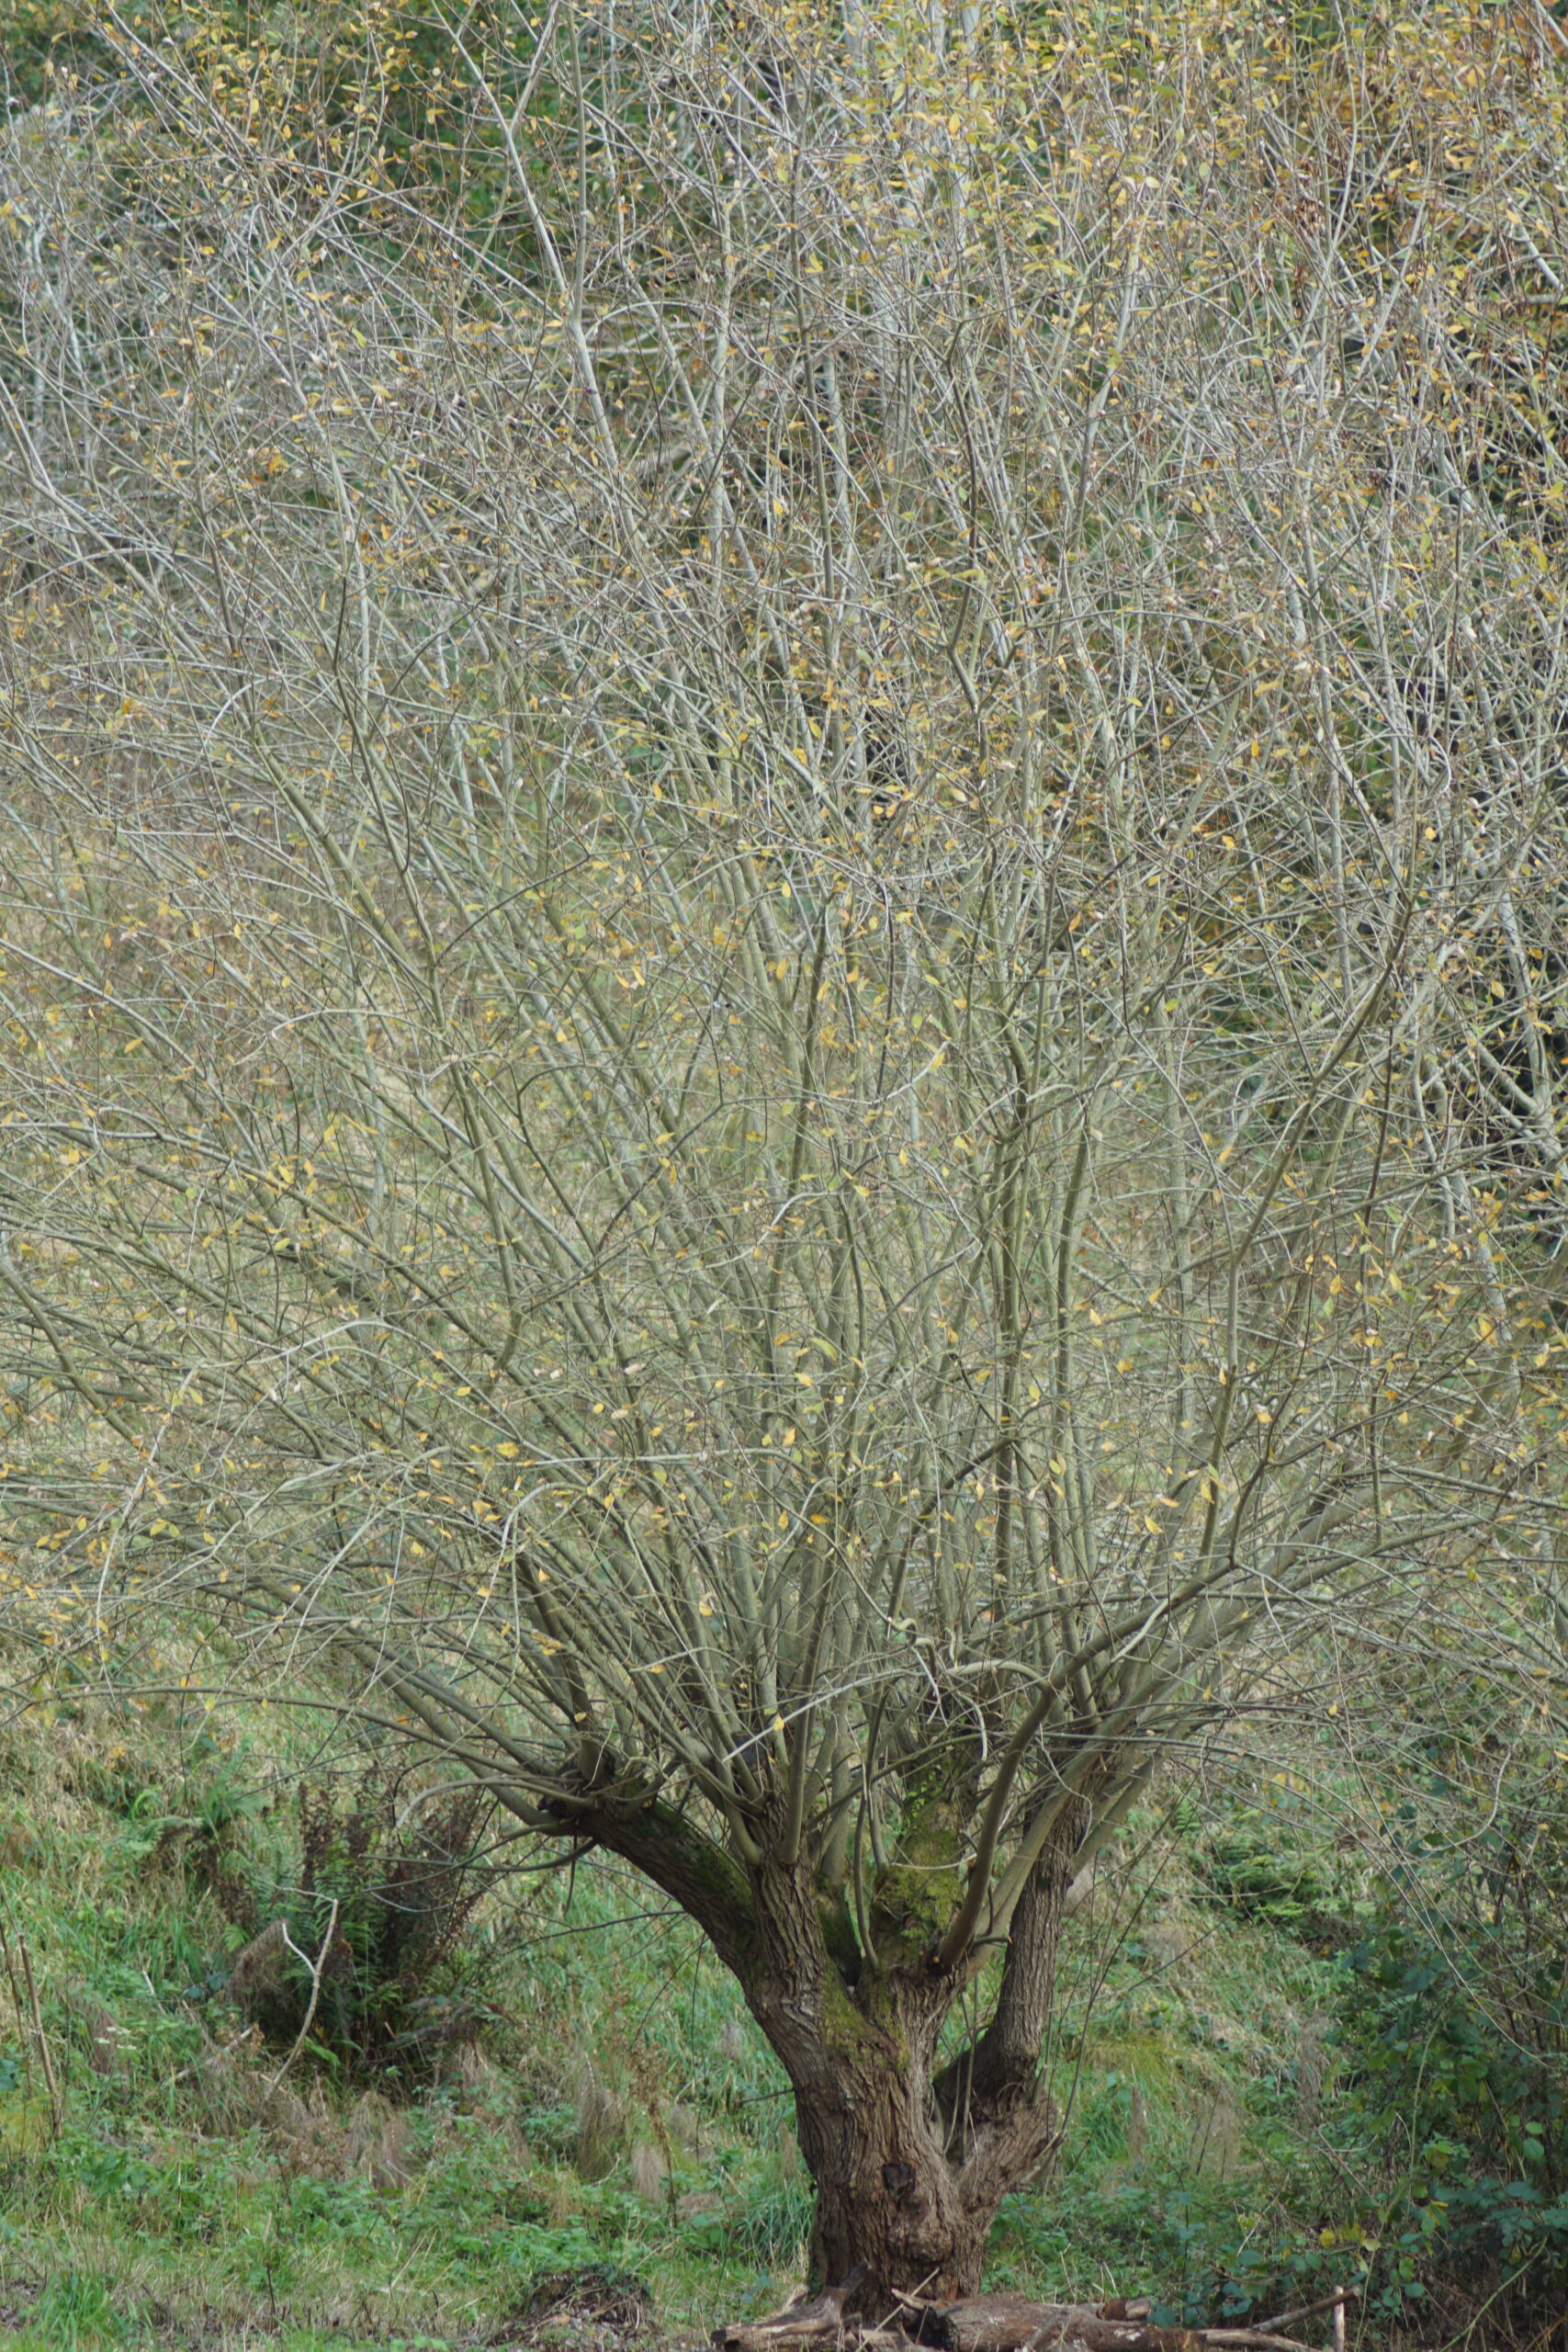 Bay willow